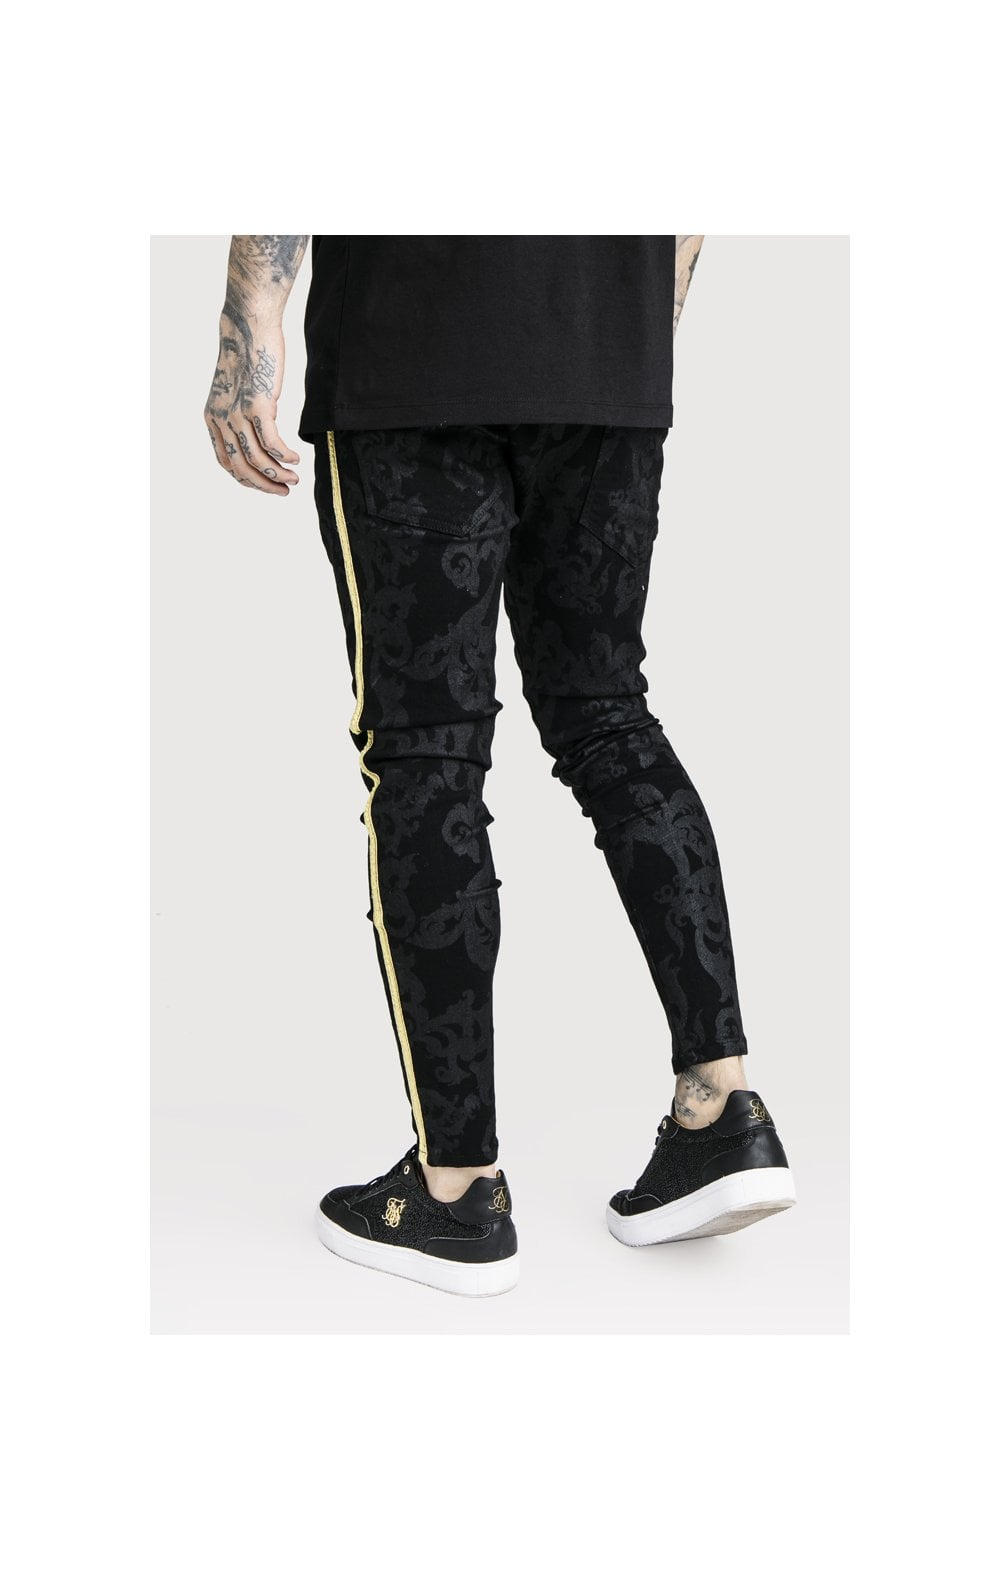 SikSilk x Dani Alves Low Rise Skinny Denims - Black (3)